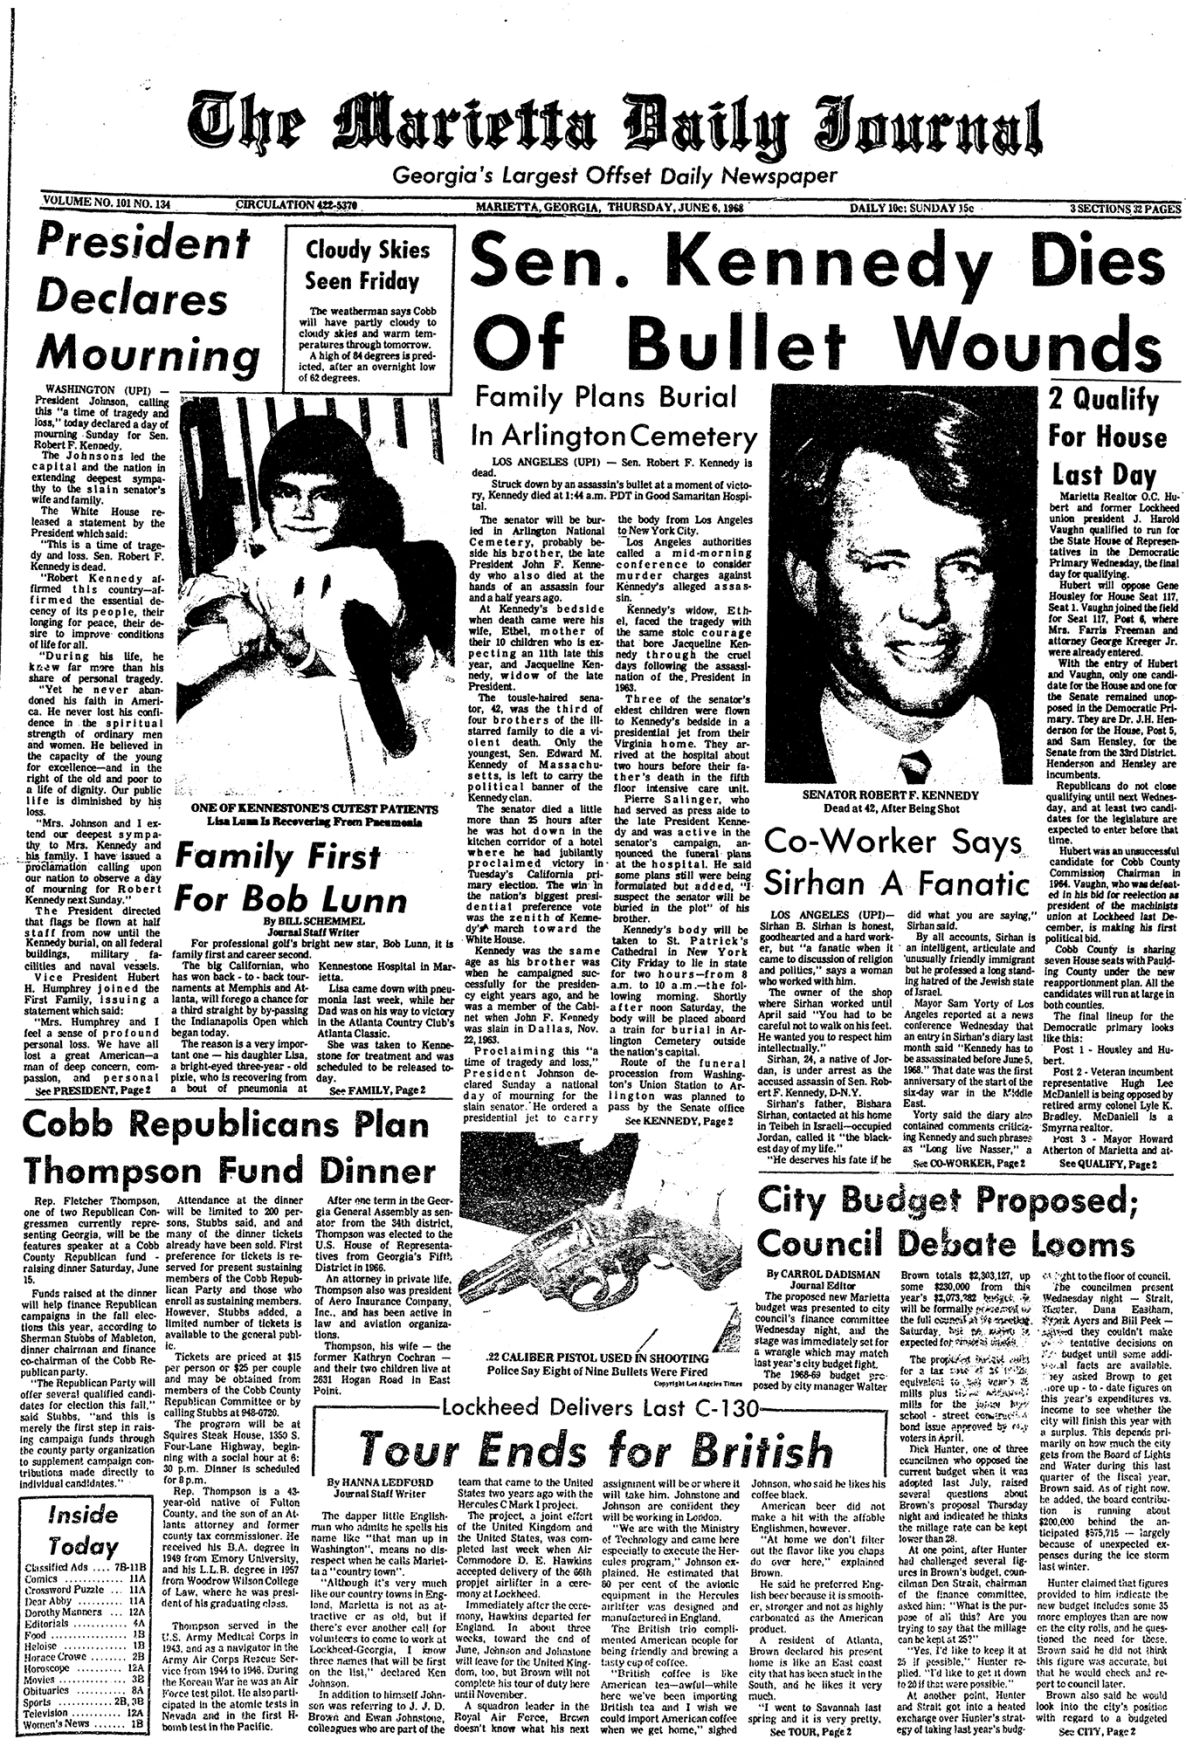 June 6, 1968 Page A1 Front - Time Capsule.jpg